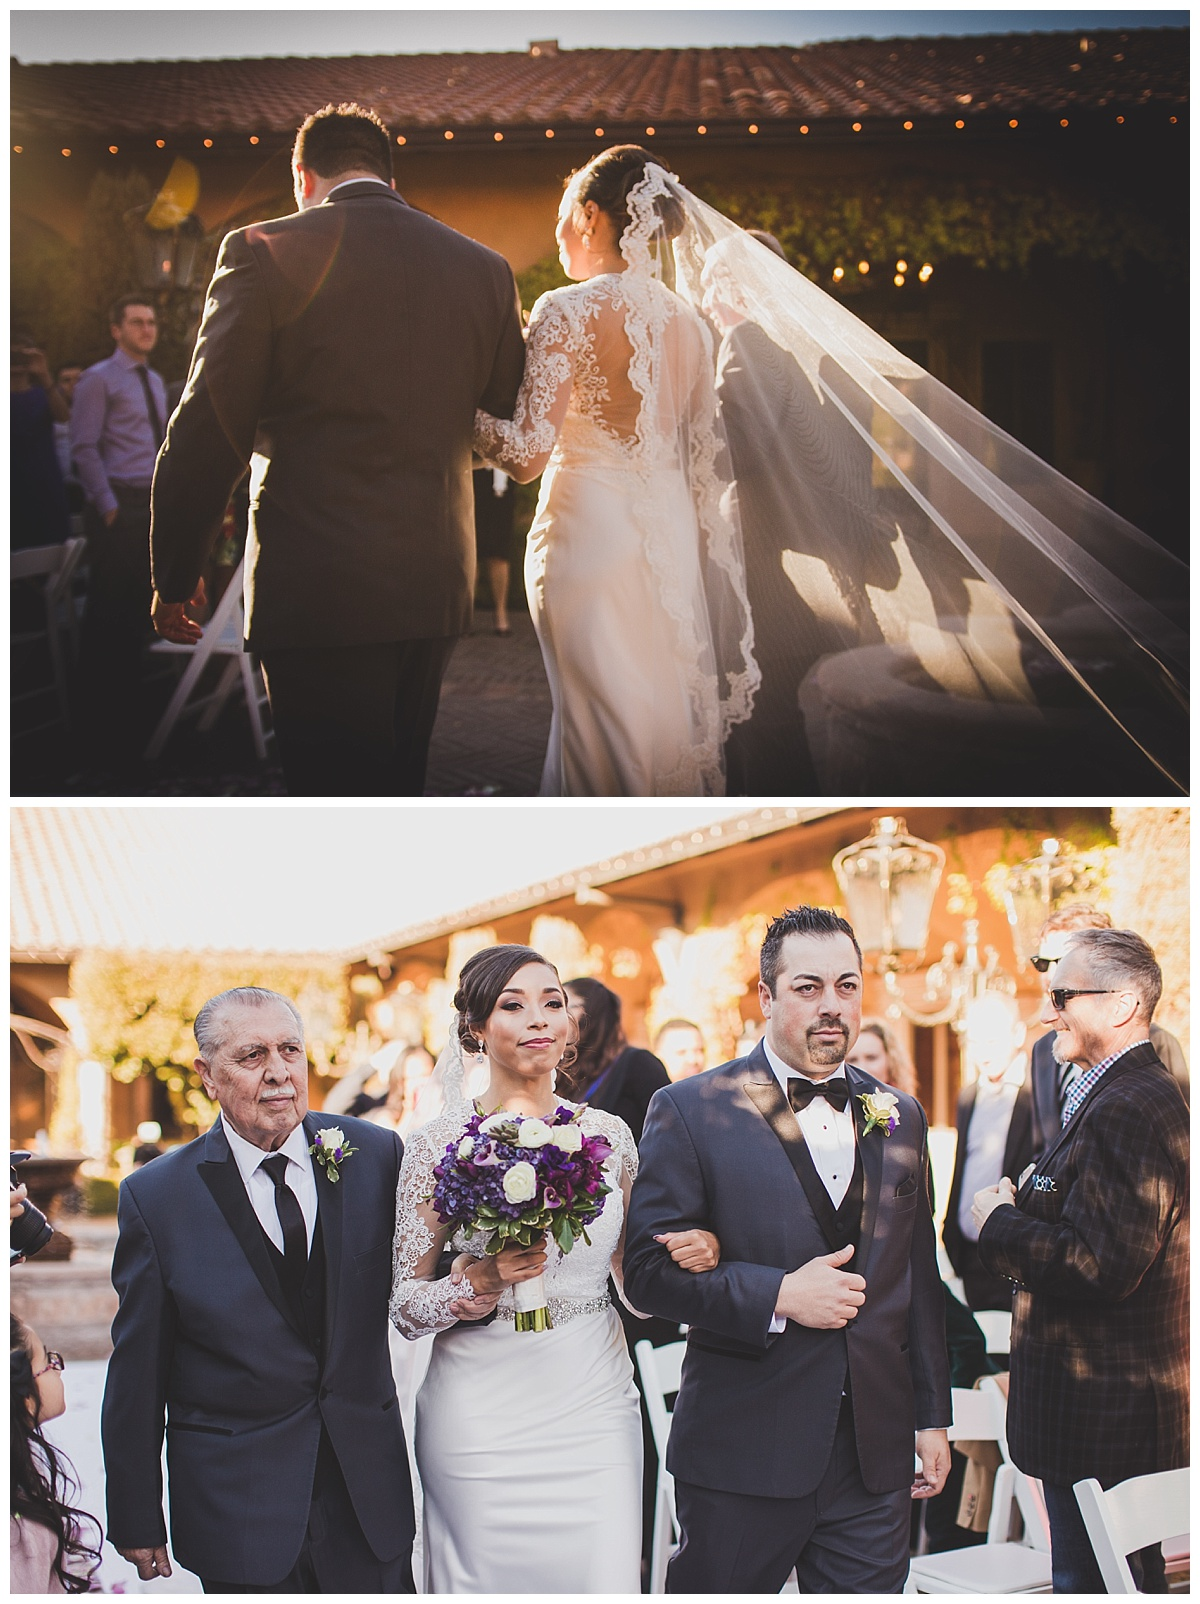 Arizona Wedding Photographer, Tuscan Wedding Photographer, Villa Siena Wedding, Phoenix Photographer, Phoenix Wedding Photographer, Scottsdale Wedding Photographer, Arizona Bride, Stylish Bride, Classic Bride